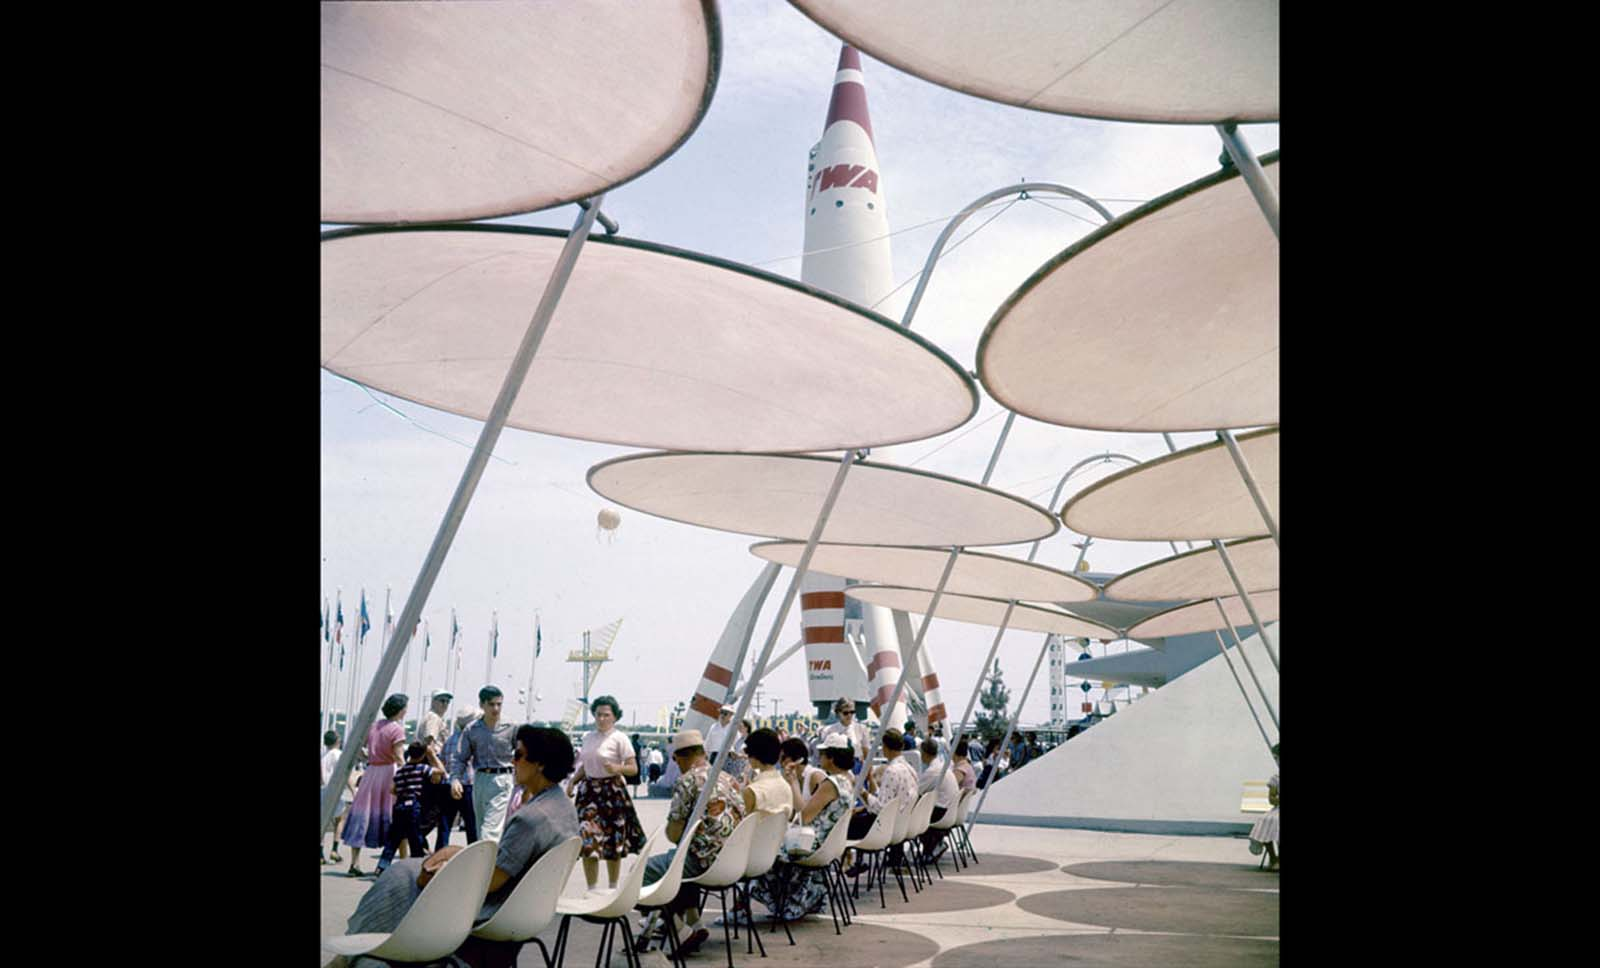 Park attendees relax under sunshades near a TWA rocket in Disneyland in July 1955.